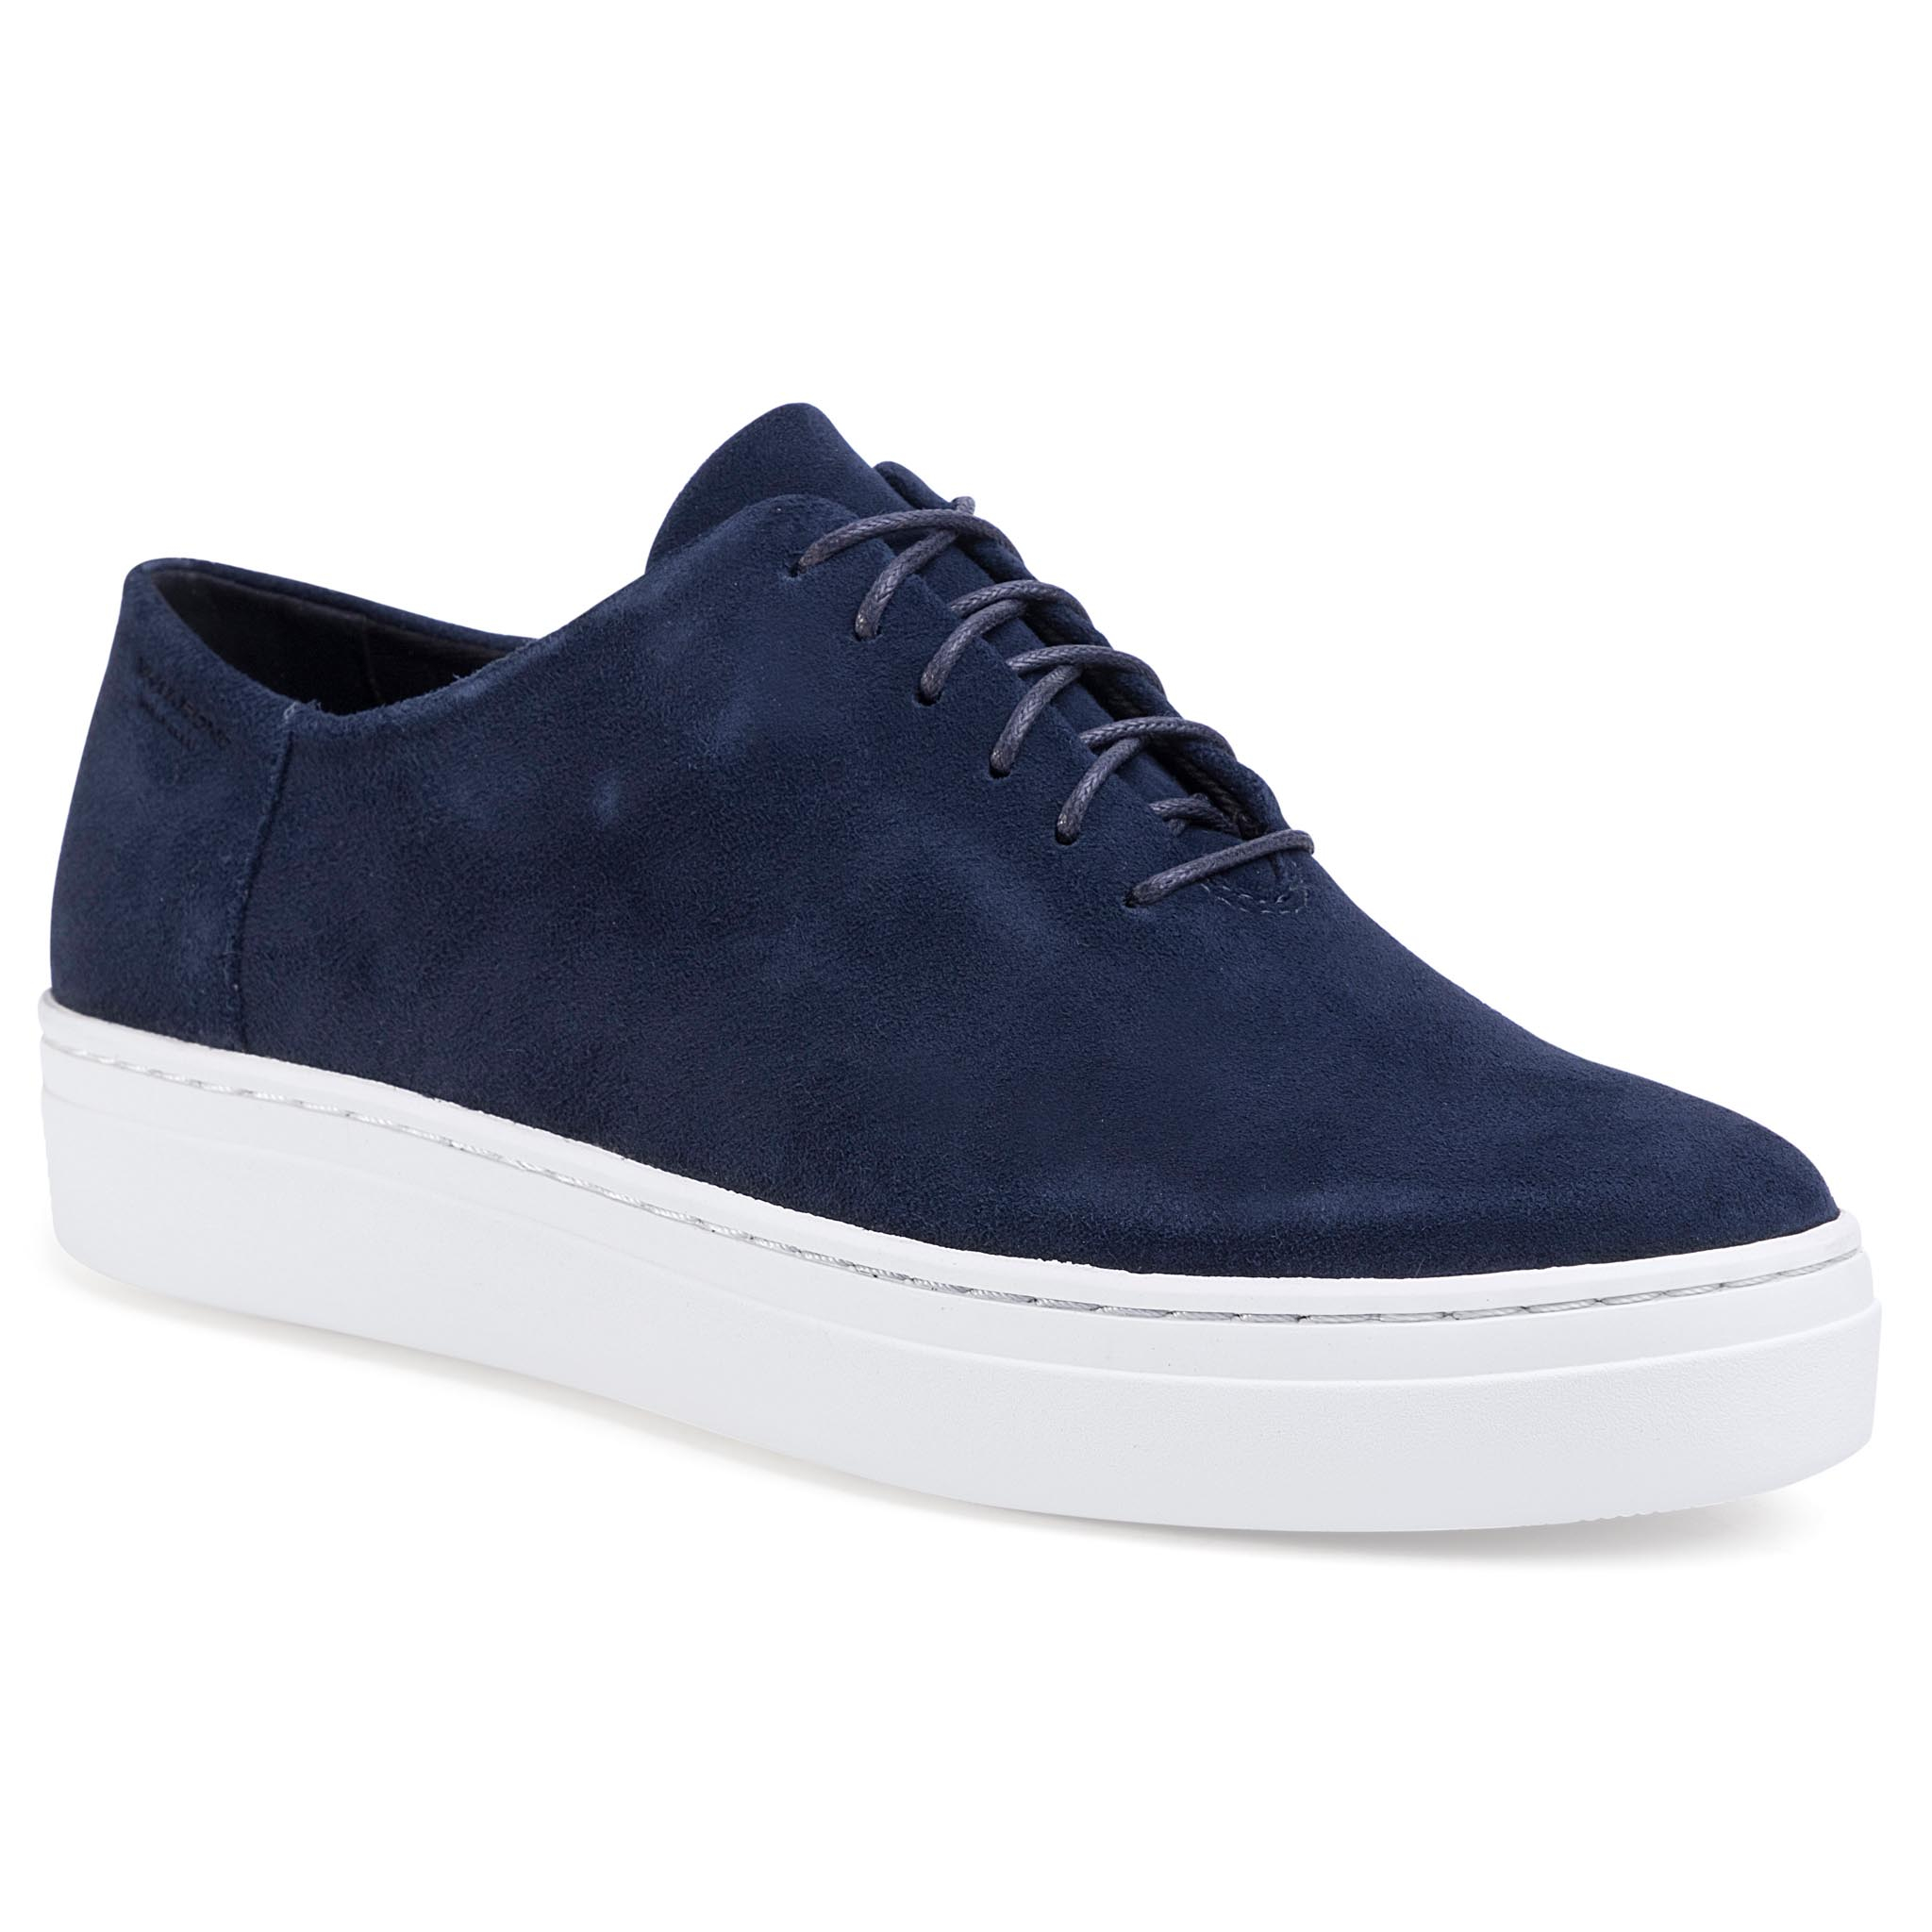 Sneakersy VAGABOND - Camille 4945-040-64 Dk Blue